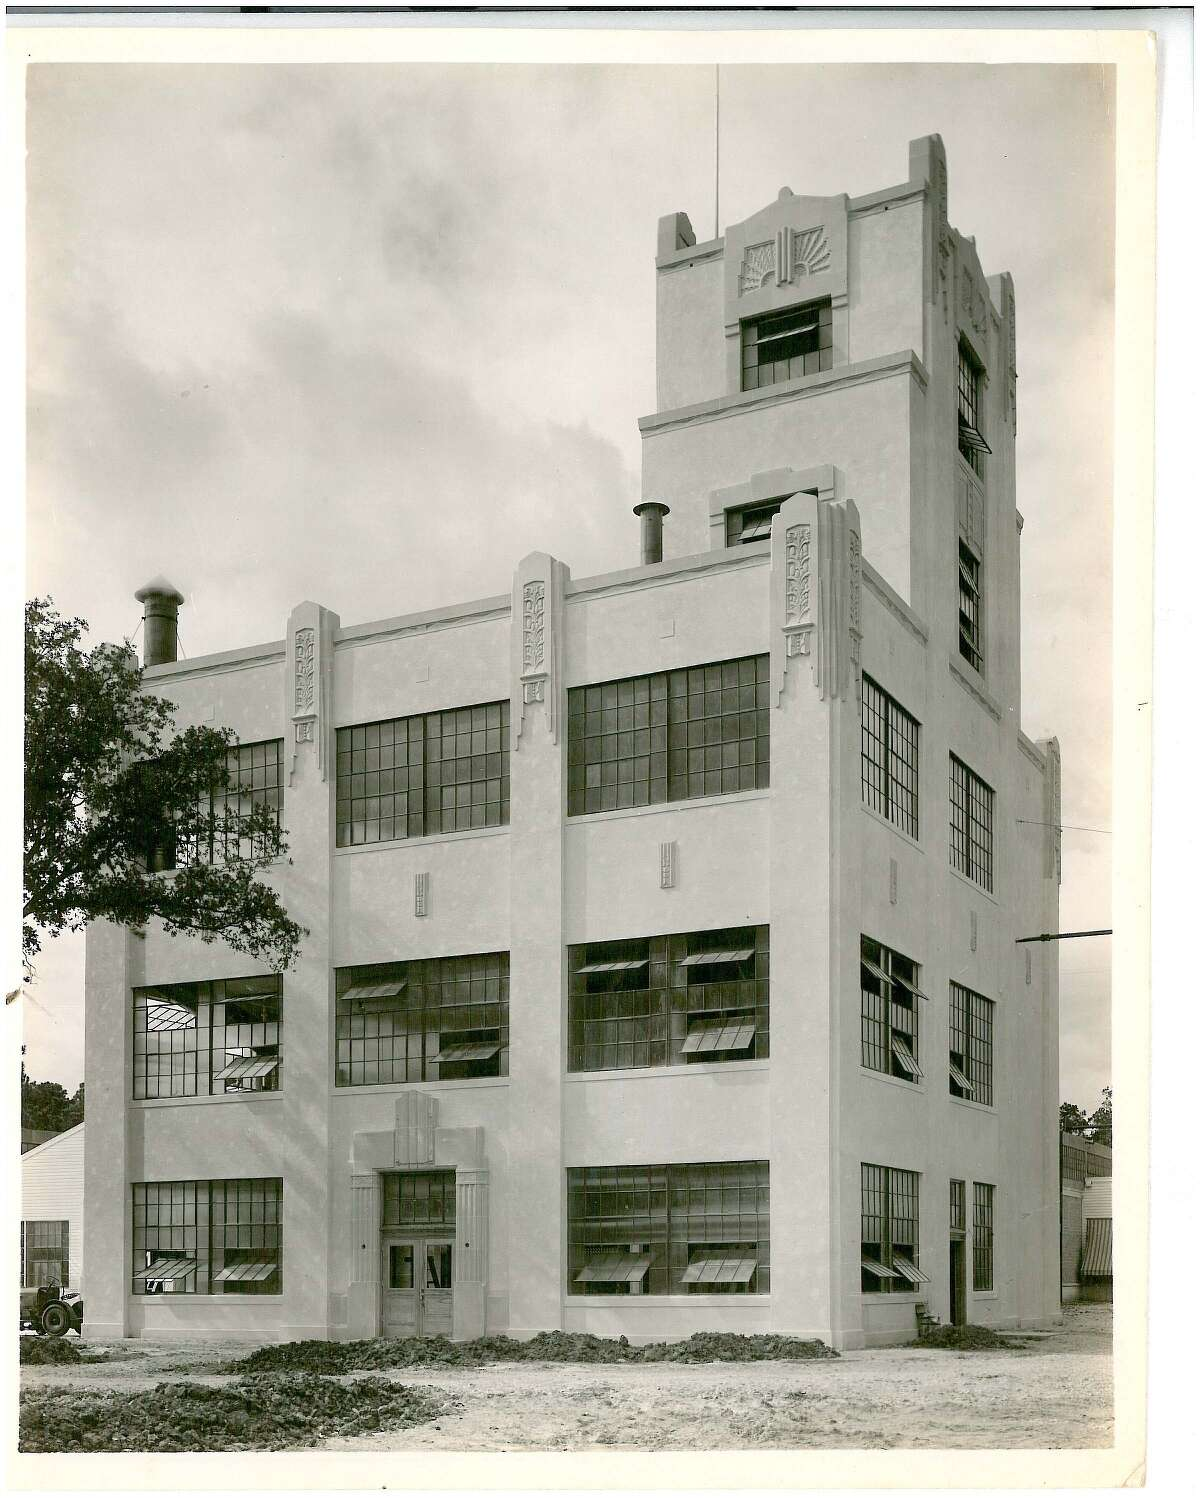 Gulf Brewing Company s Grand Prize Brewery was built on the grounds of its parent company, Hughes Tool. Collection of Philip Brogniez. From